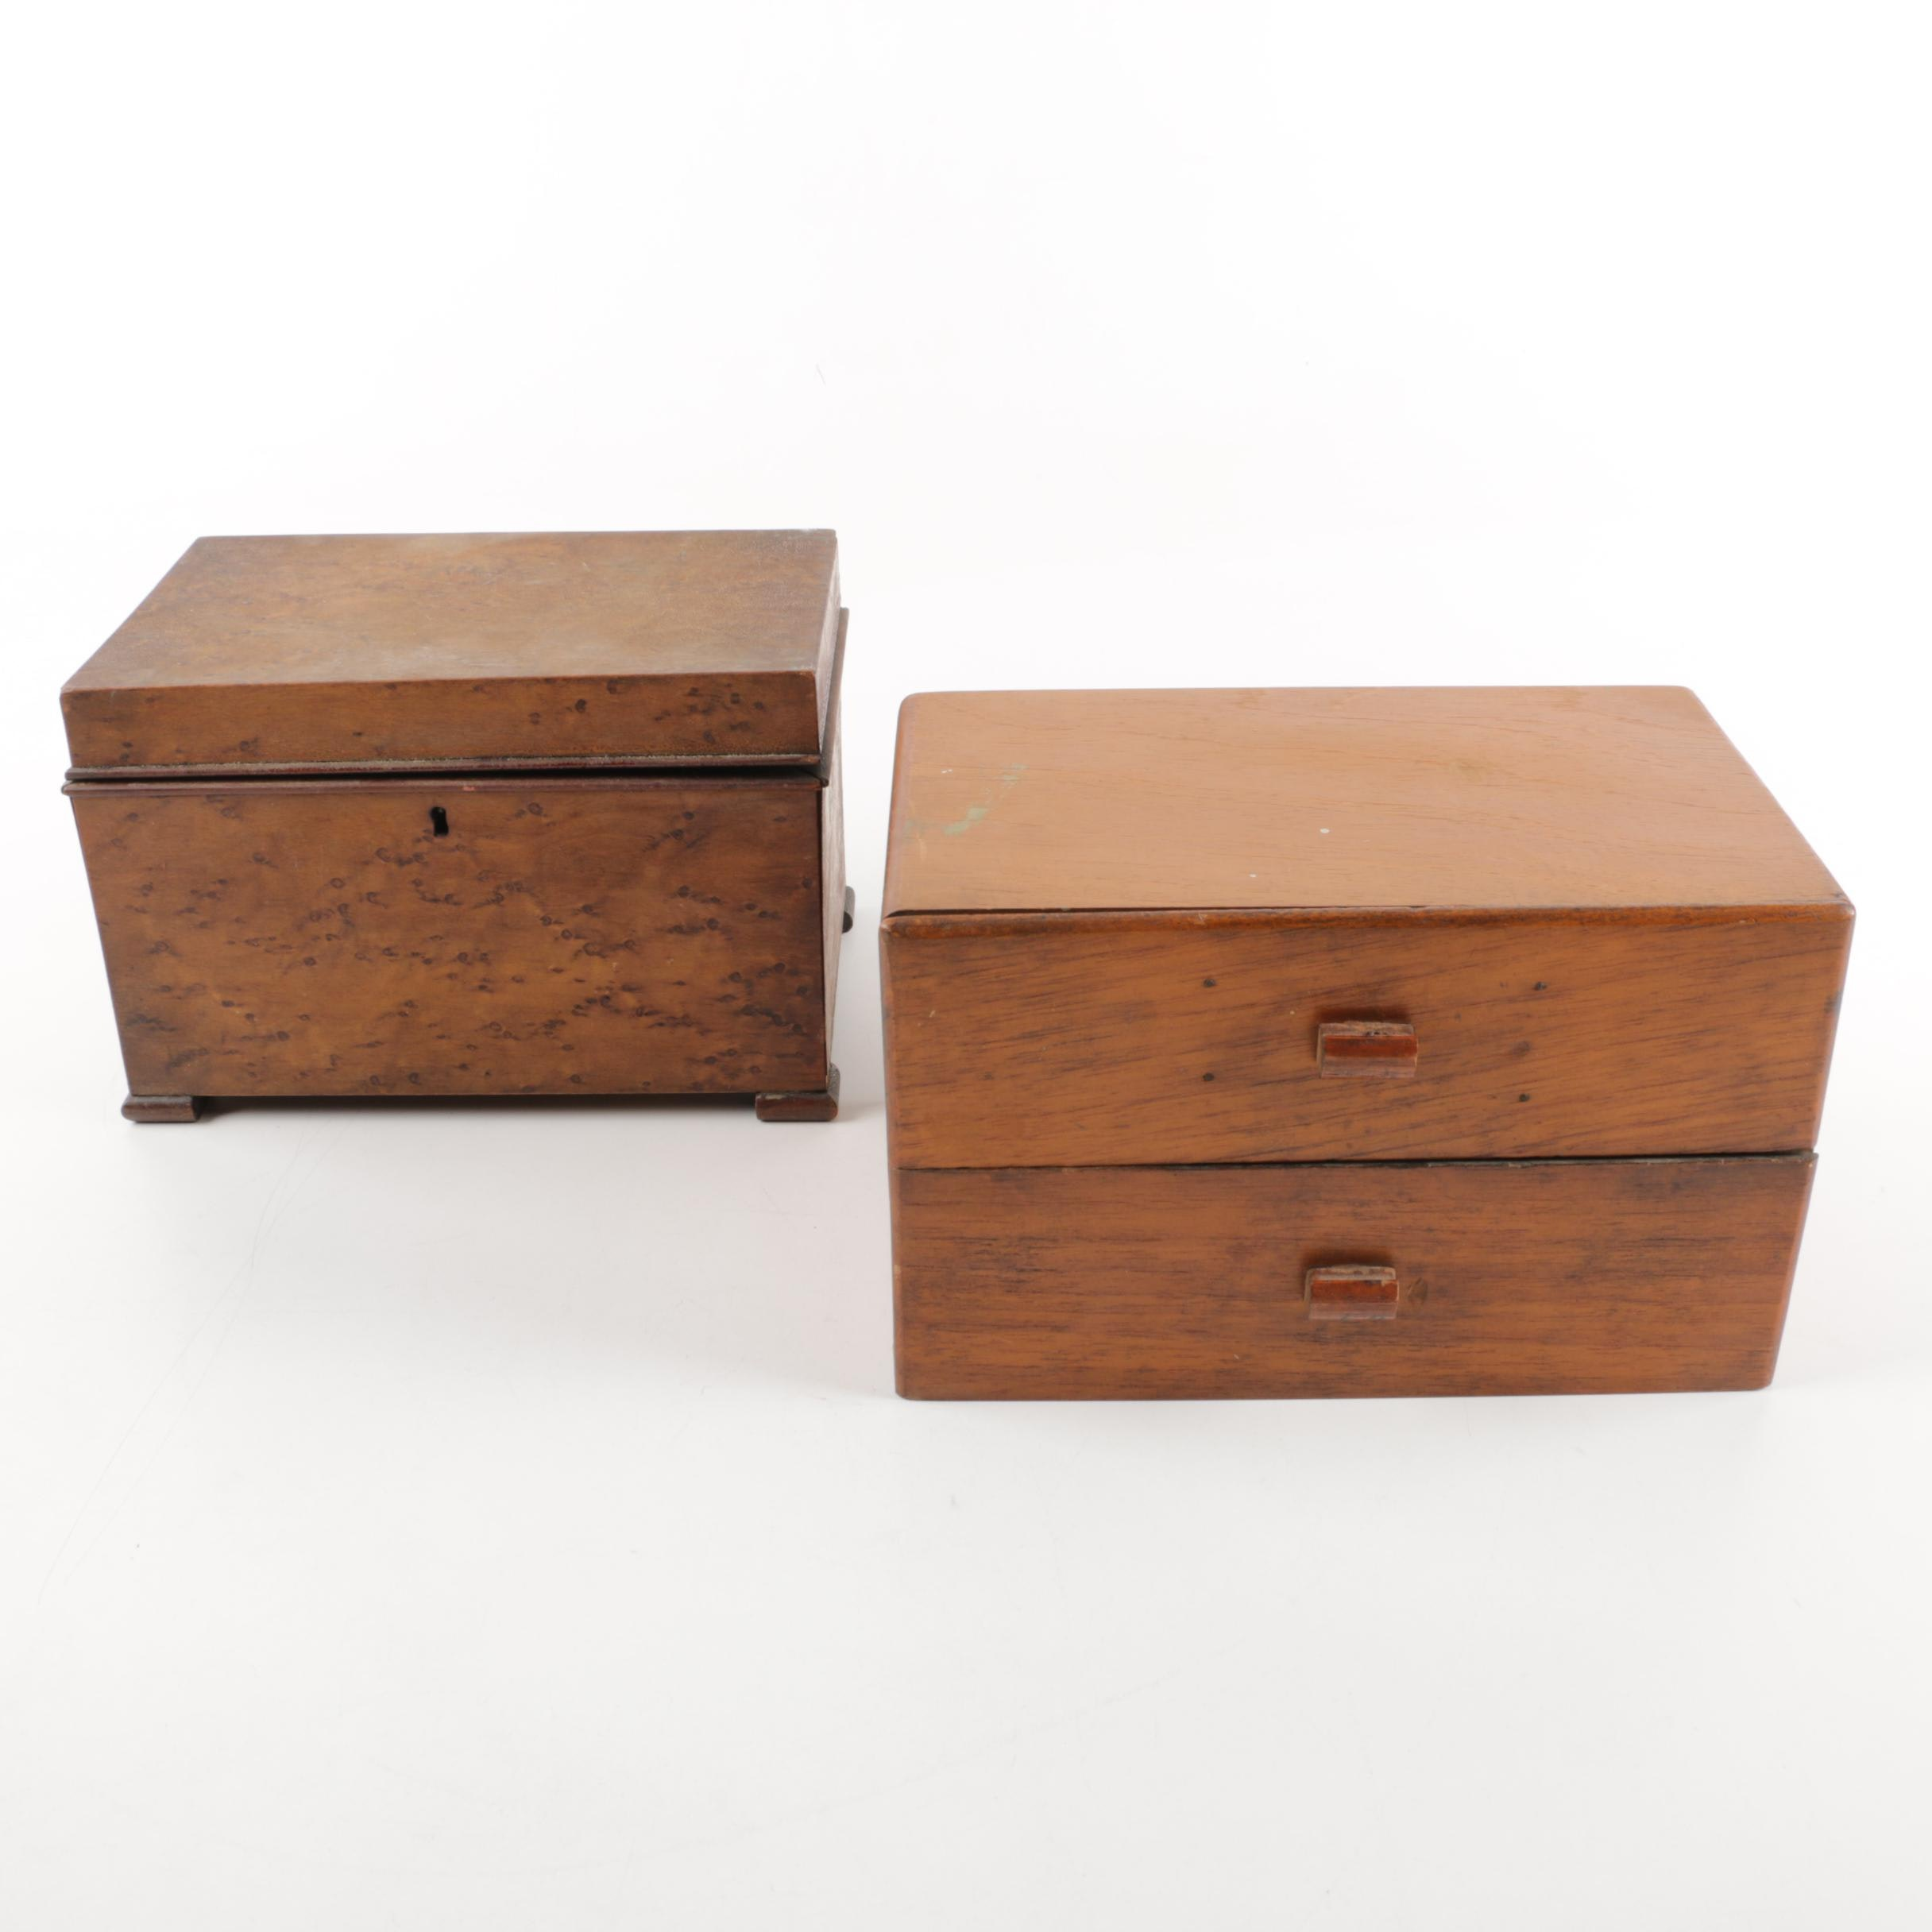 Pair of Vintage Hardwood Boxes